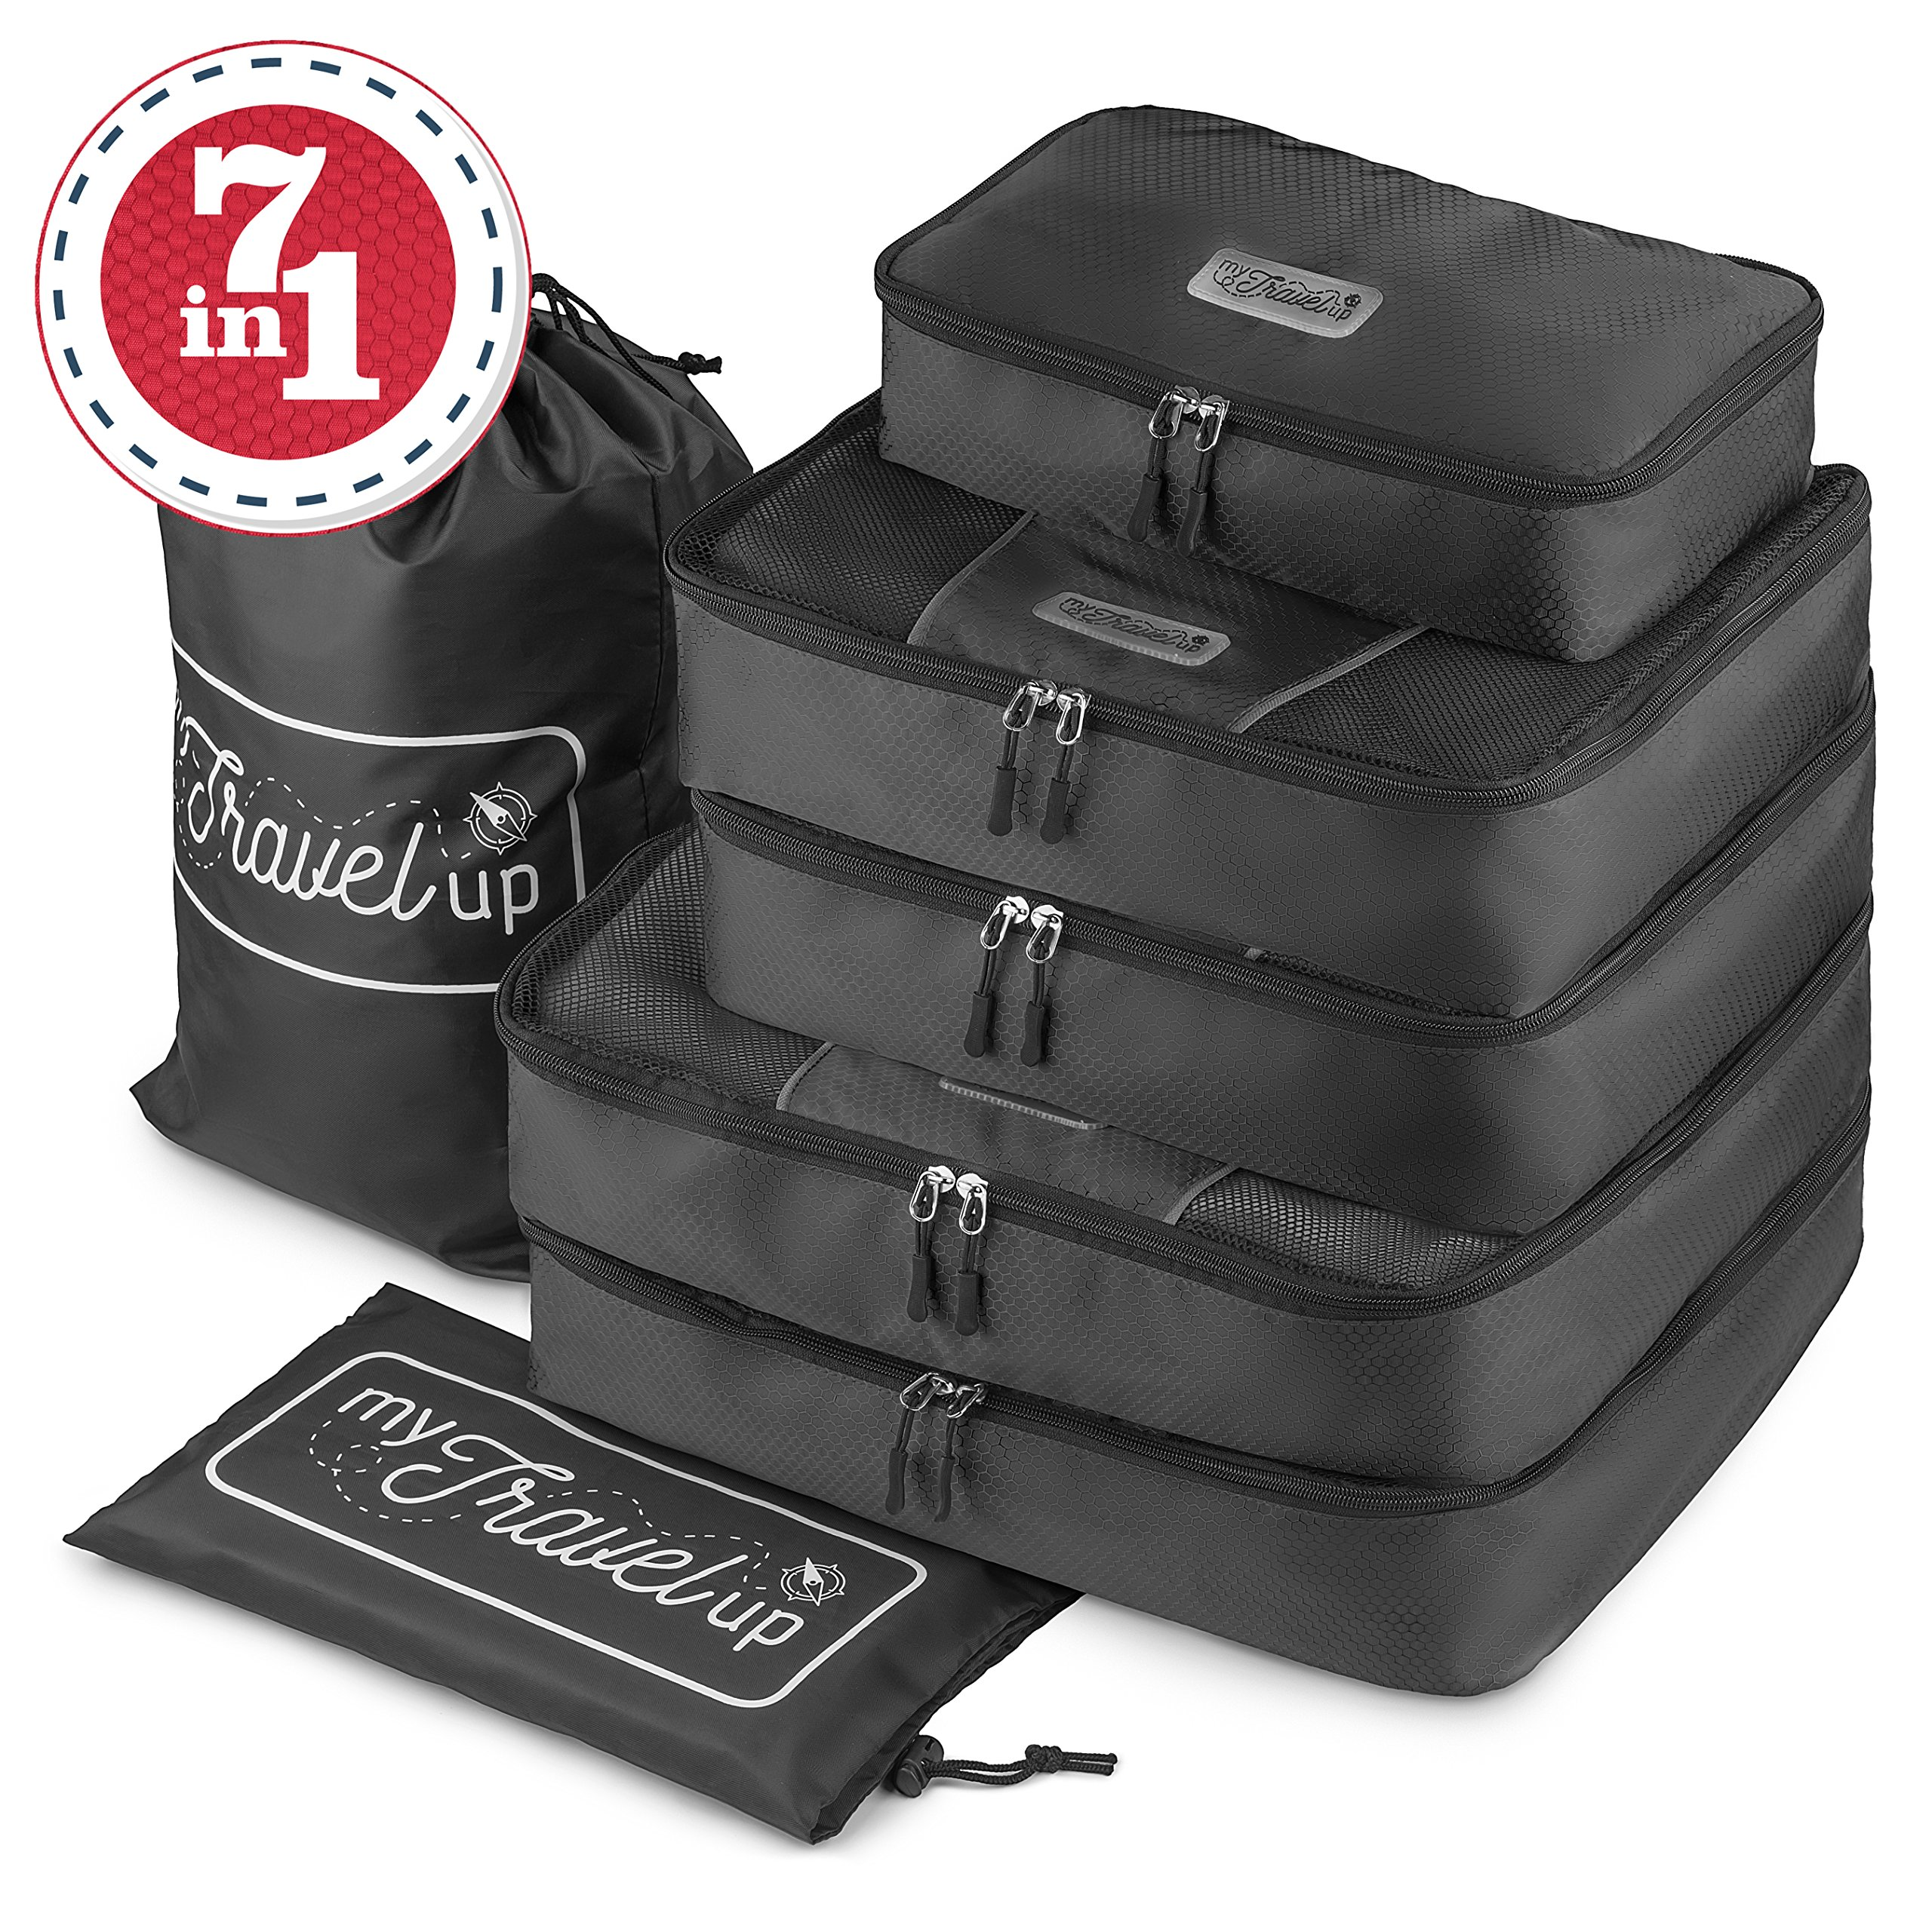 MyTravelUp, 7in1 - TRAVEL PACKING CUBES for everyone who loves travelling, HIGH QUALITY durable material, 2 BAGS for LAUNDRY/SHOES. This travel set will be a SMART ORGANIZER for clothes (Black)